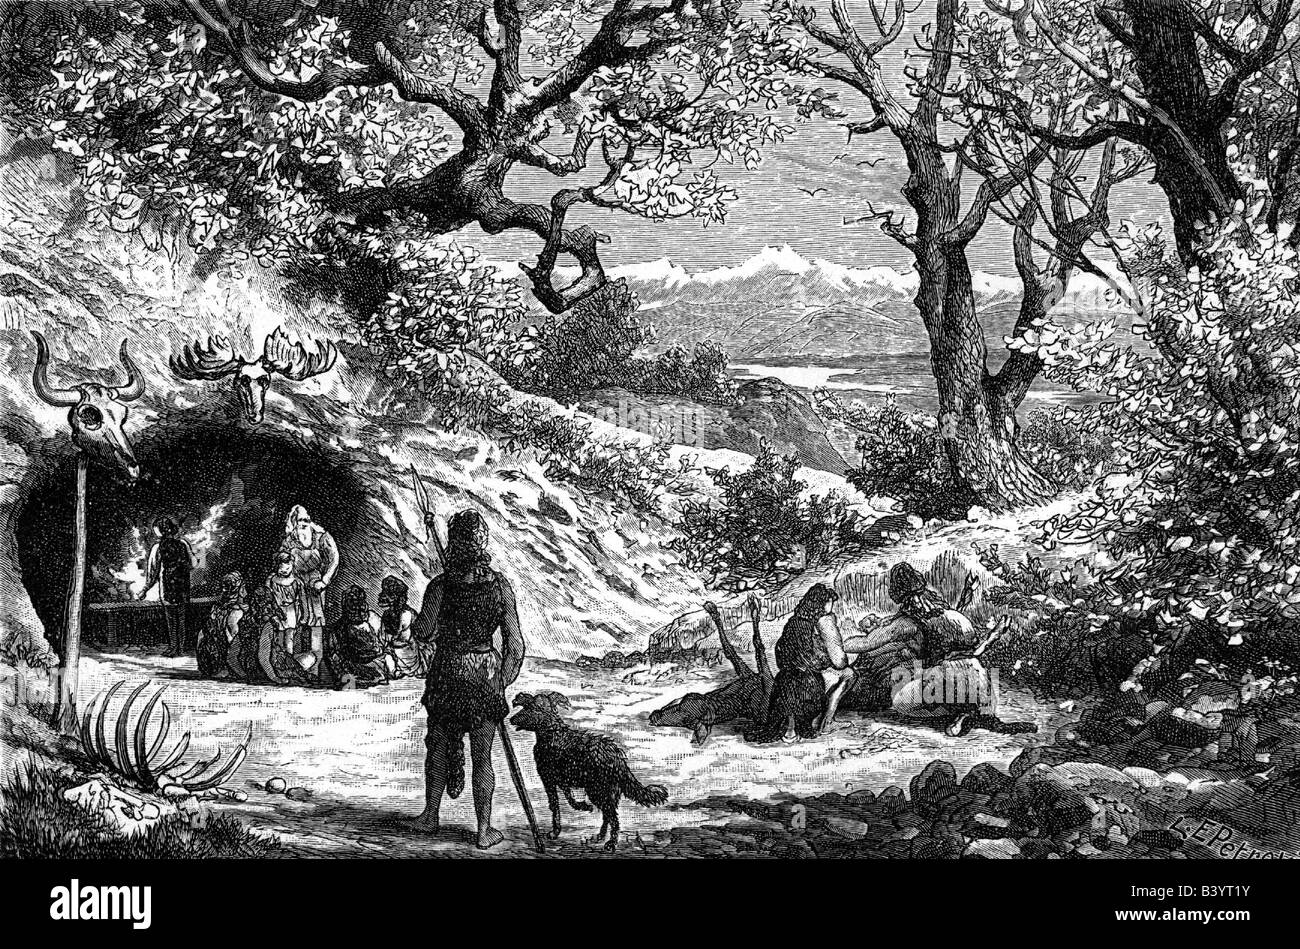 aeon / prehistory, people, prehistoric men, stone age, everyday life of a family, engraving, 19th century, historic, - Stock Image